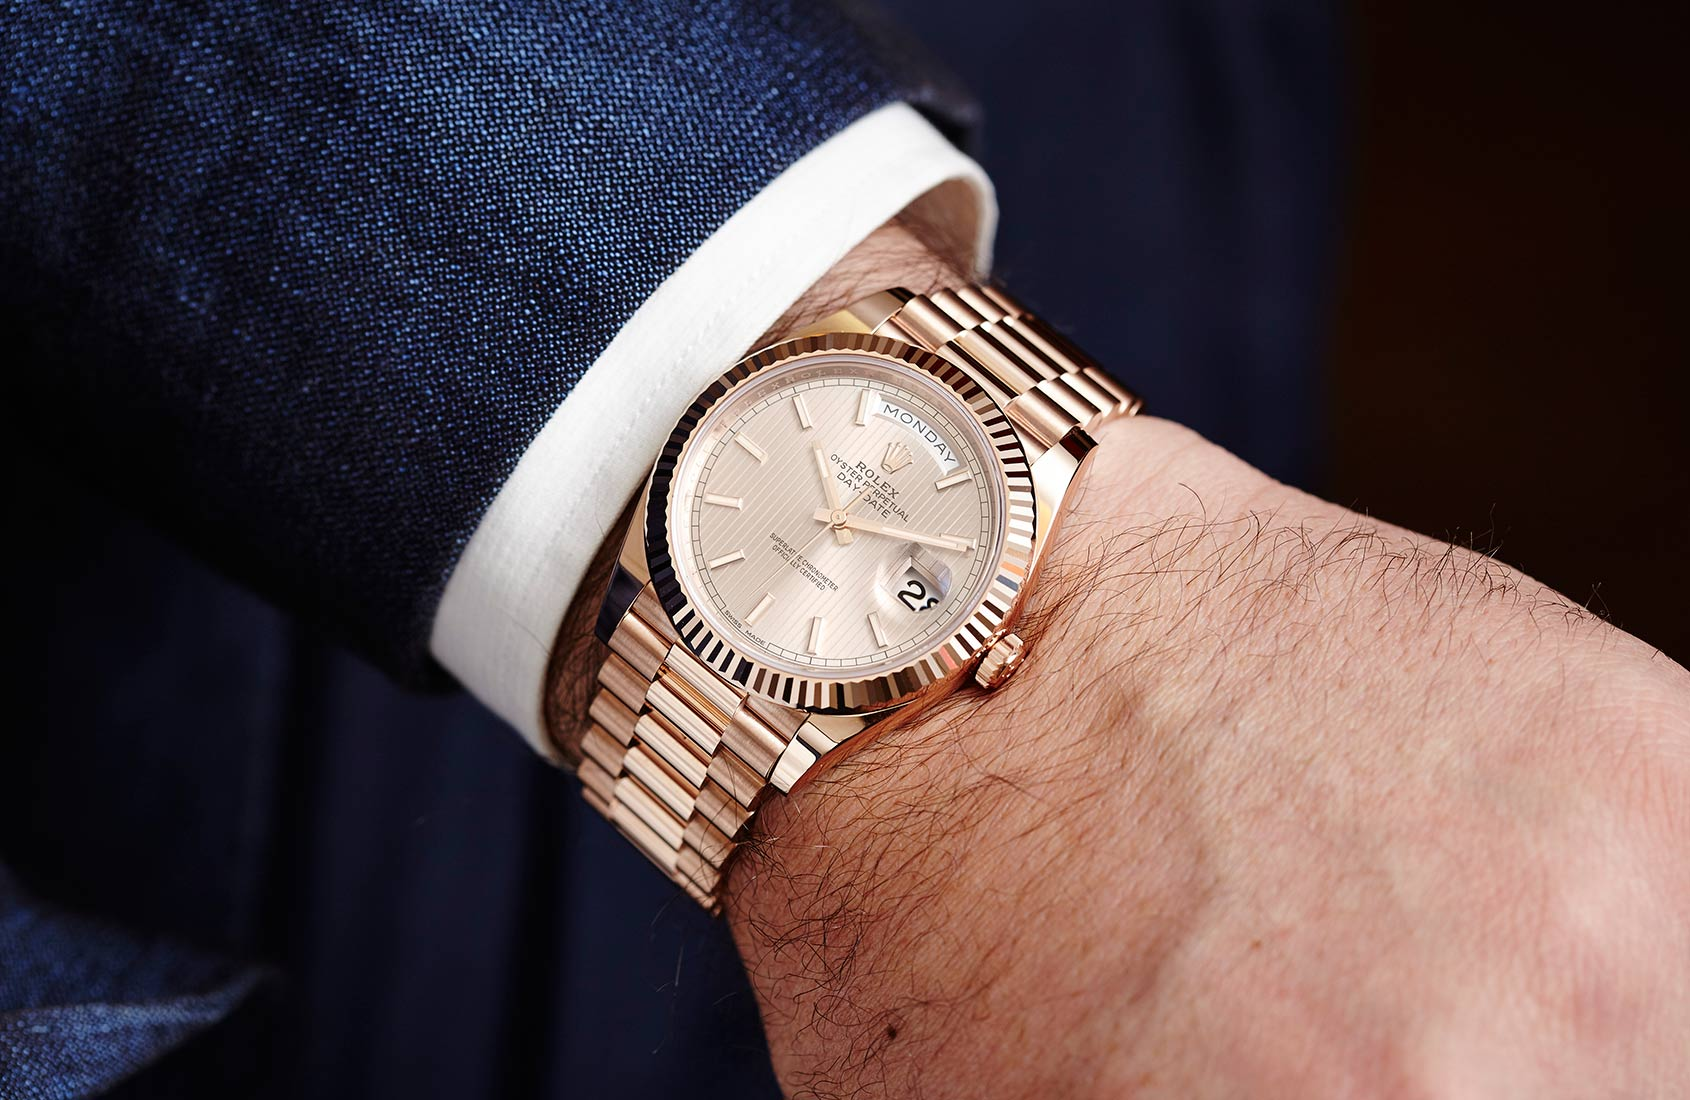 INDEPTH: The Rolex Oyster Perpetual DayDate 40 ref 228235 with